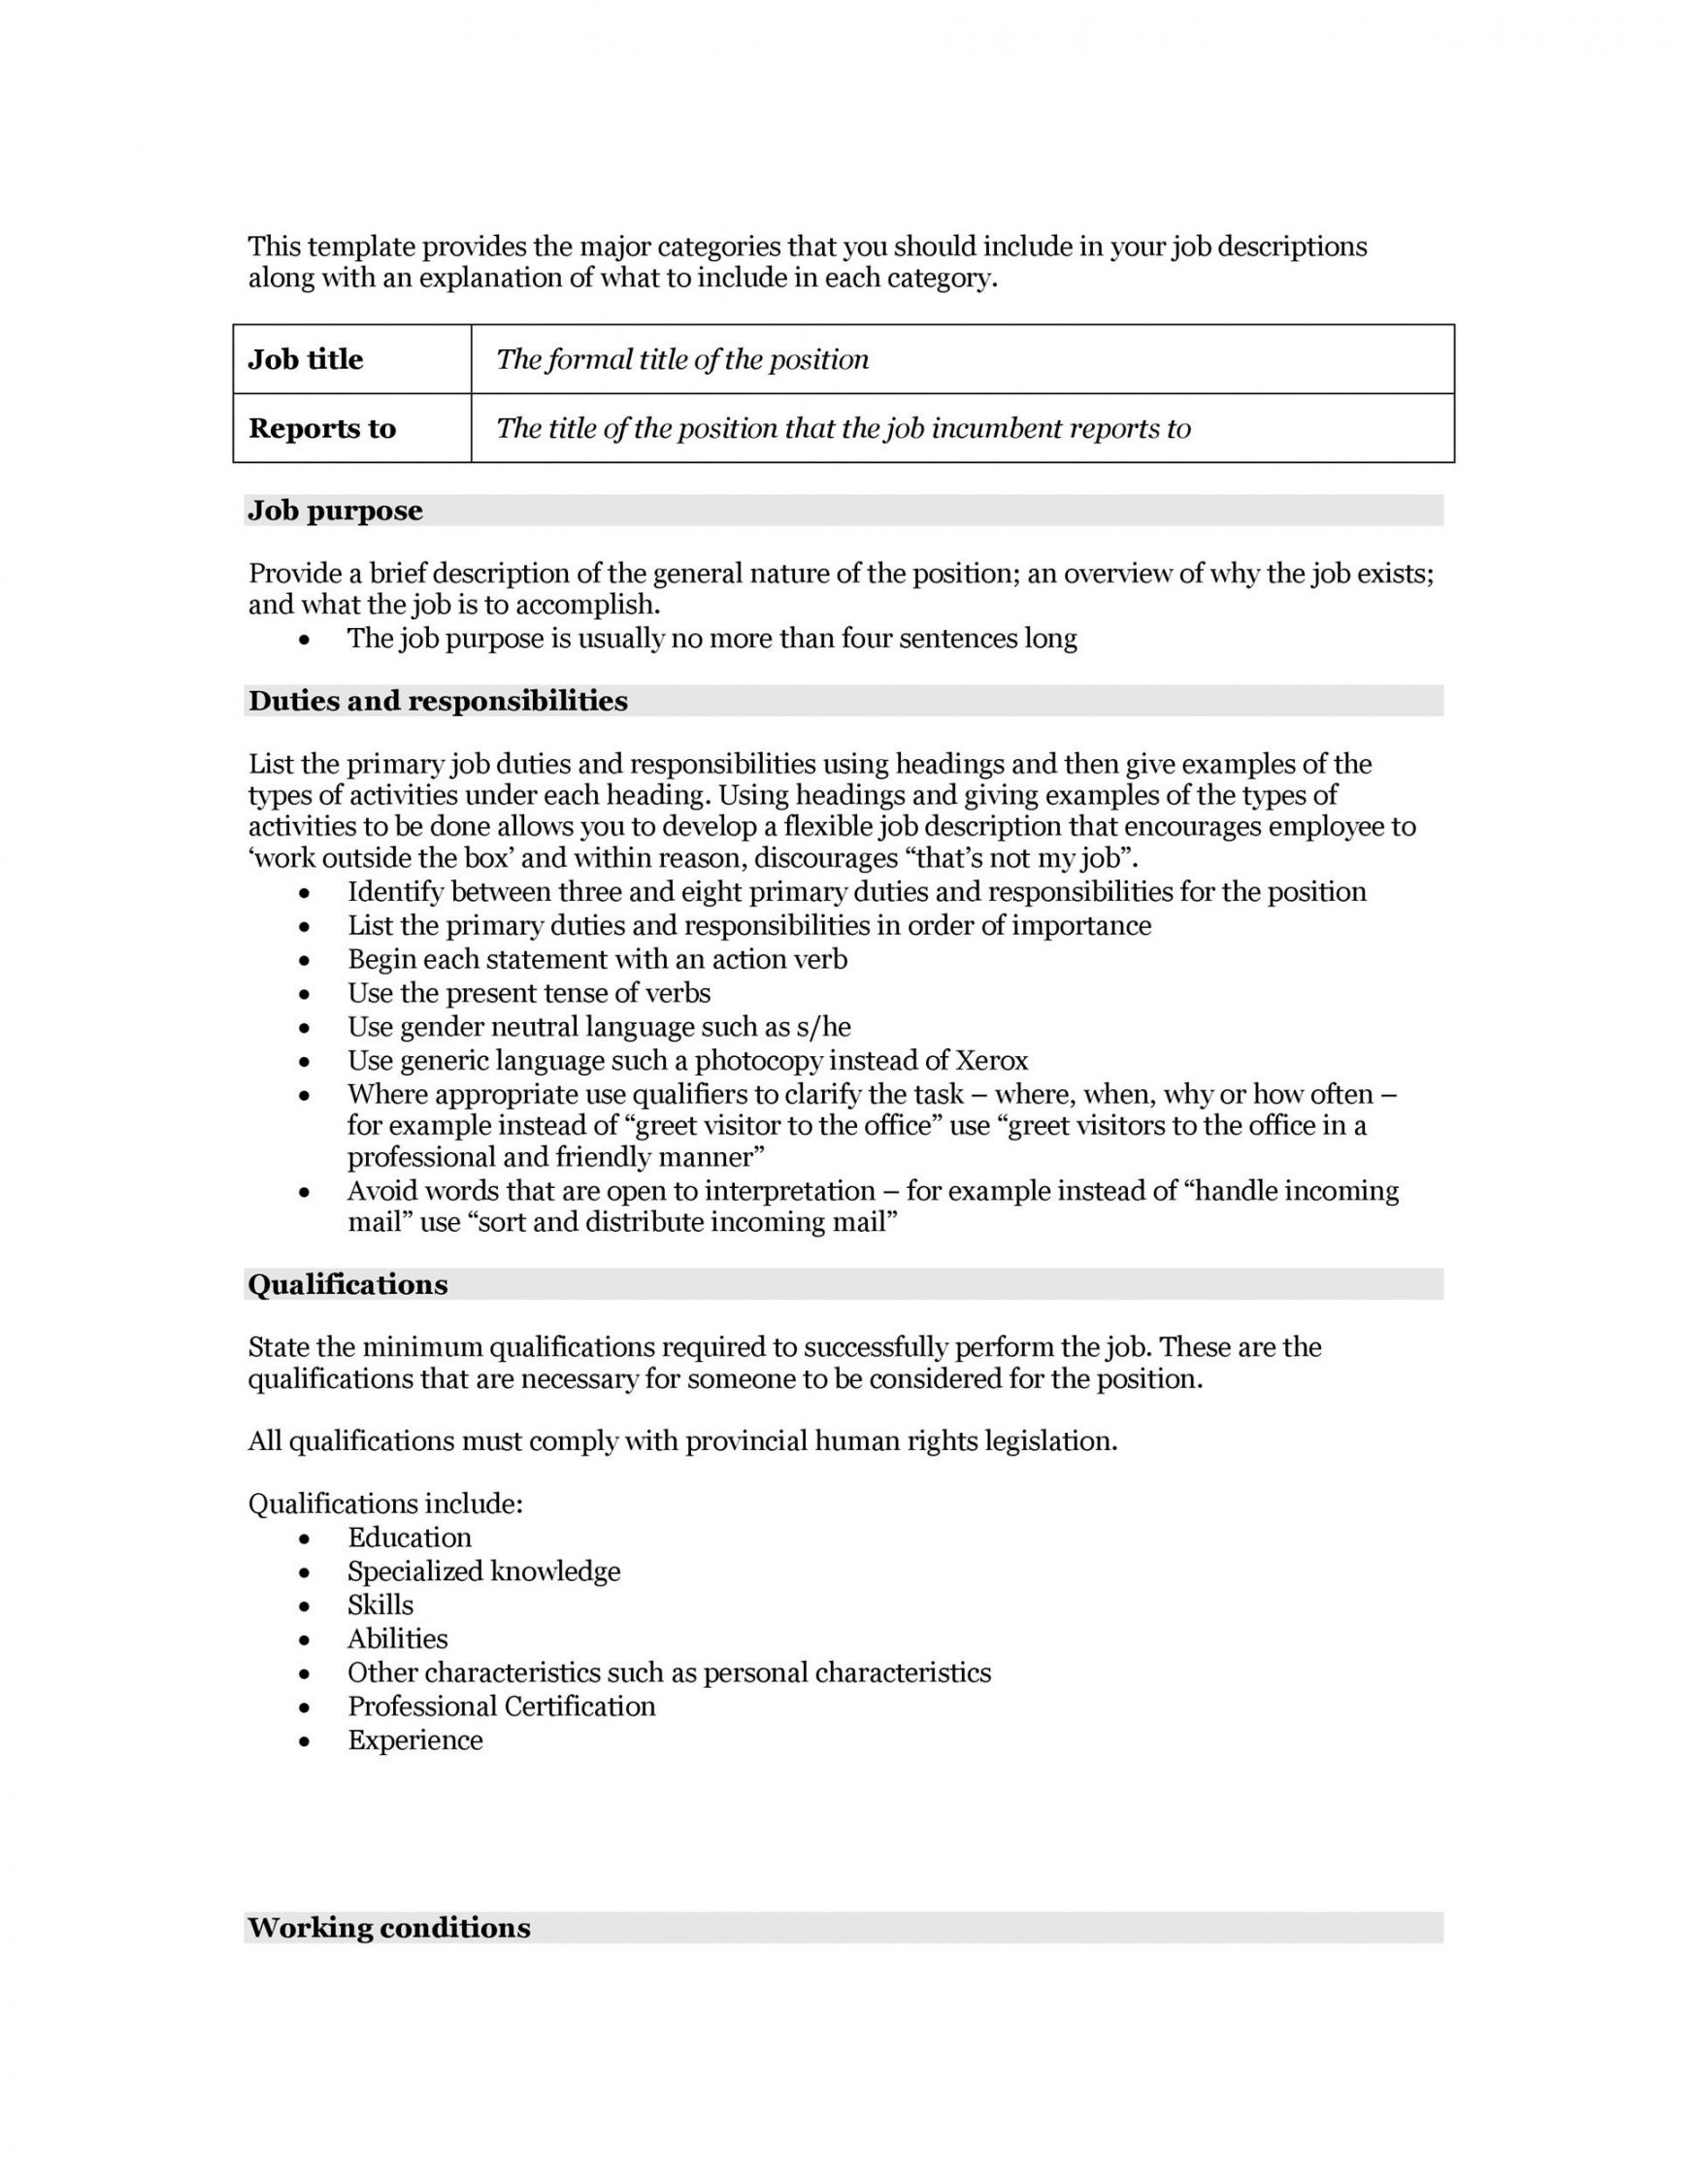 Professional Competency Based Job Description Template Word Sample